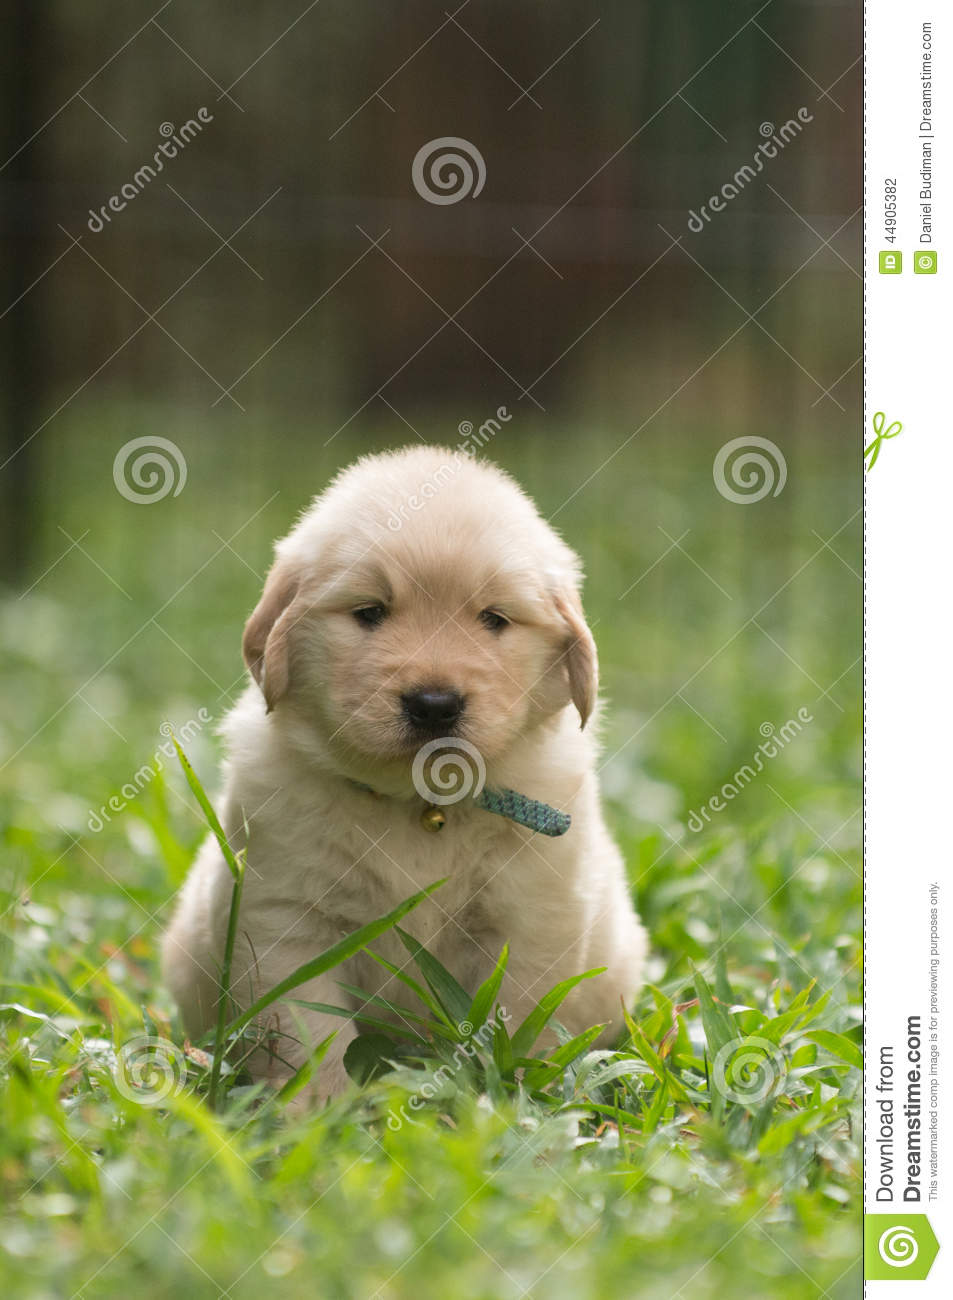 Cute golden retriever puppy with funny expression